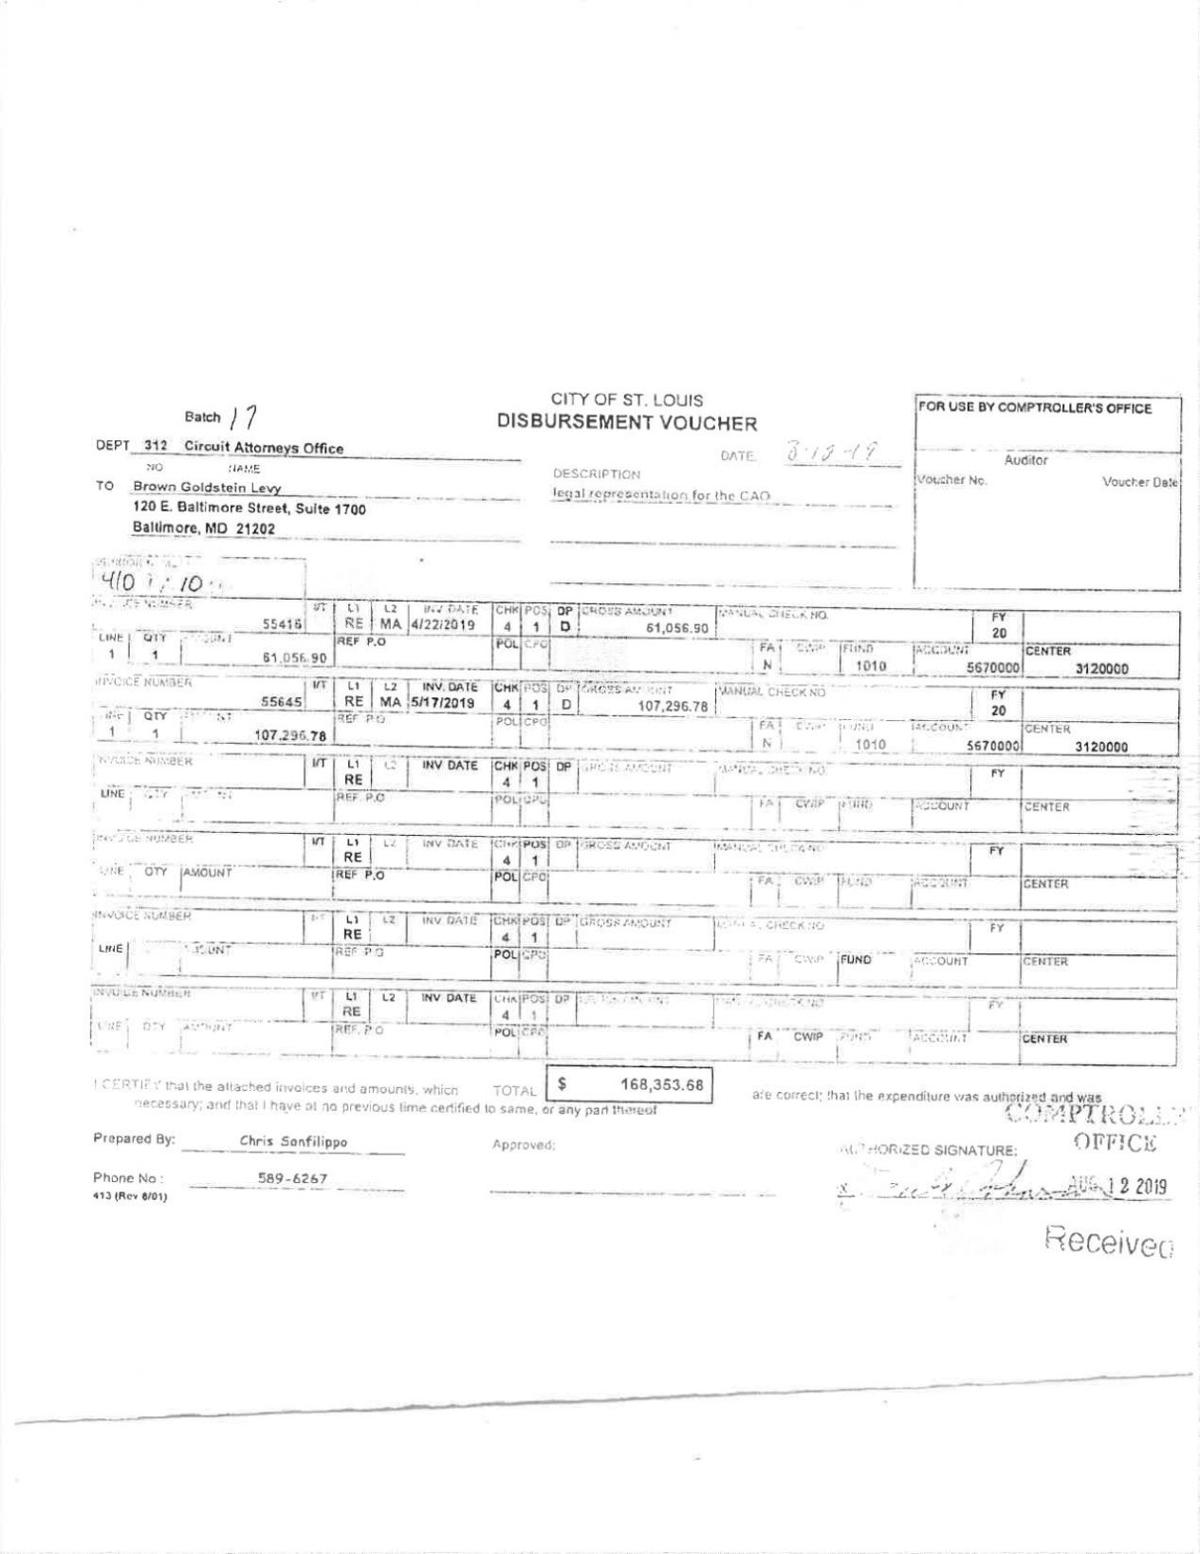 'Corruption case' legal invoice to Kimberly Gardner's office for grand jury investigation